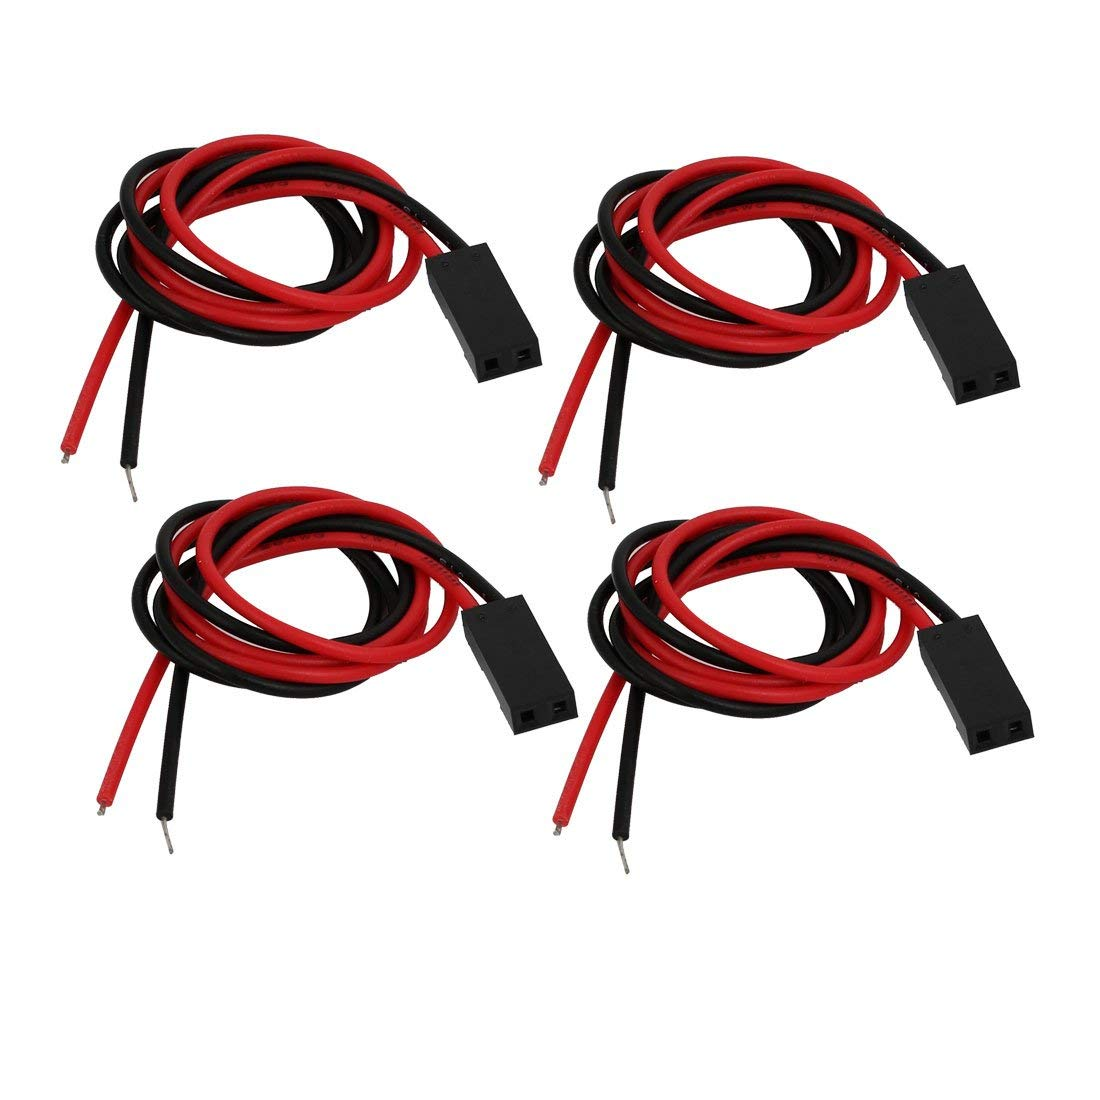 uxcell 4pcs 2.54mm Ptich 2-Terminal Male Cable Connector Extension Wire 250mm Length